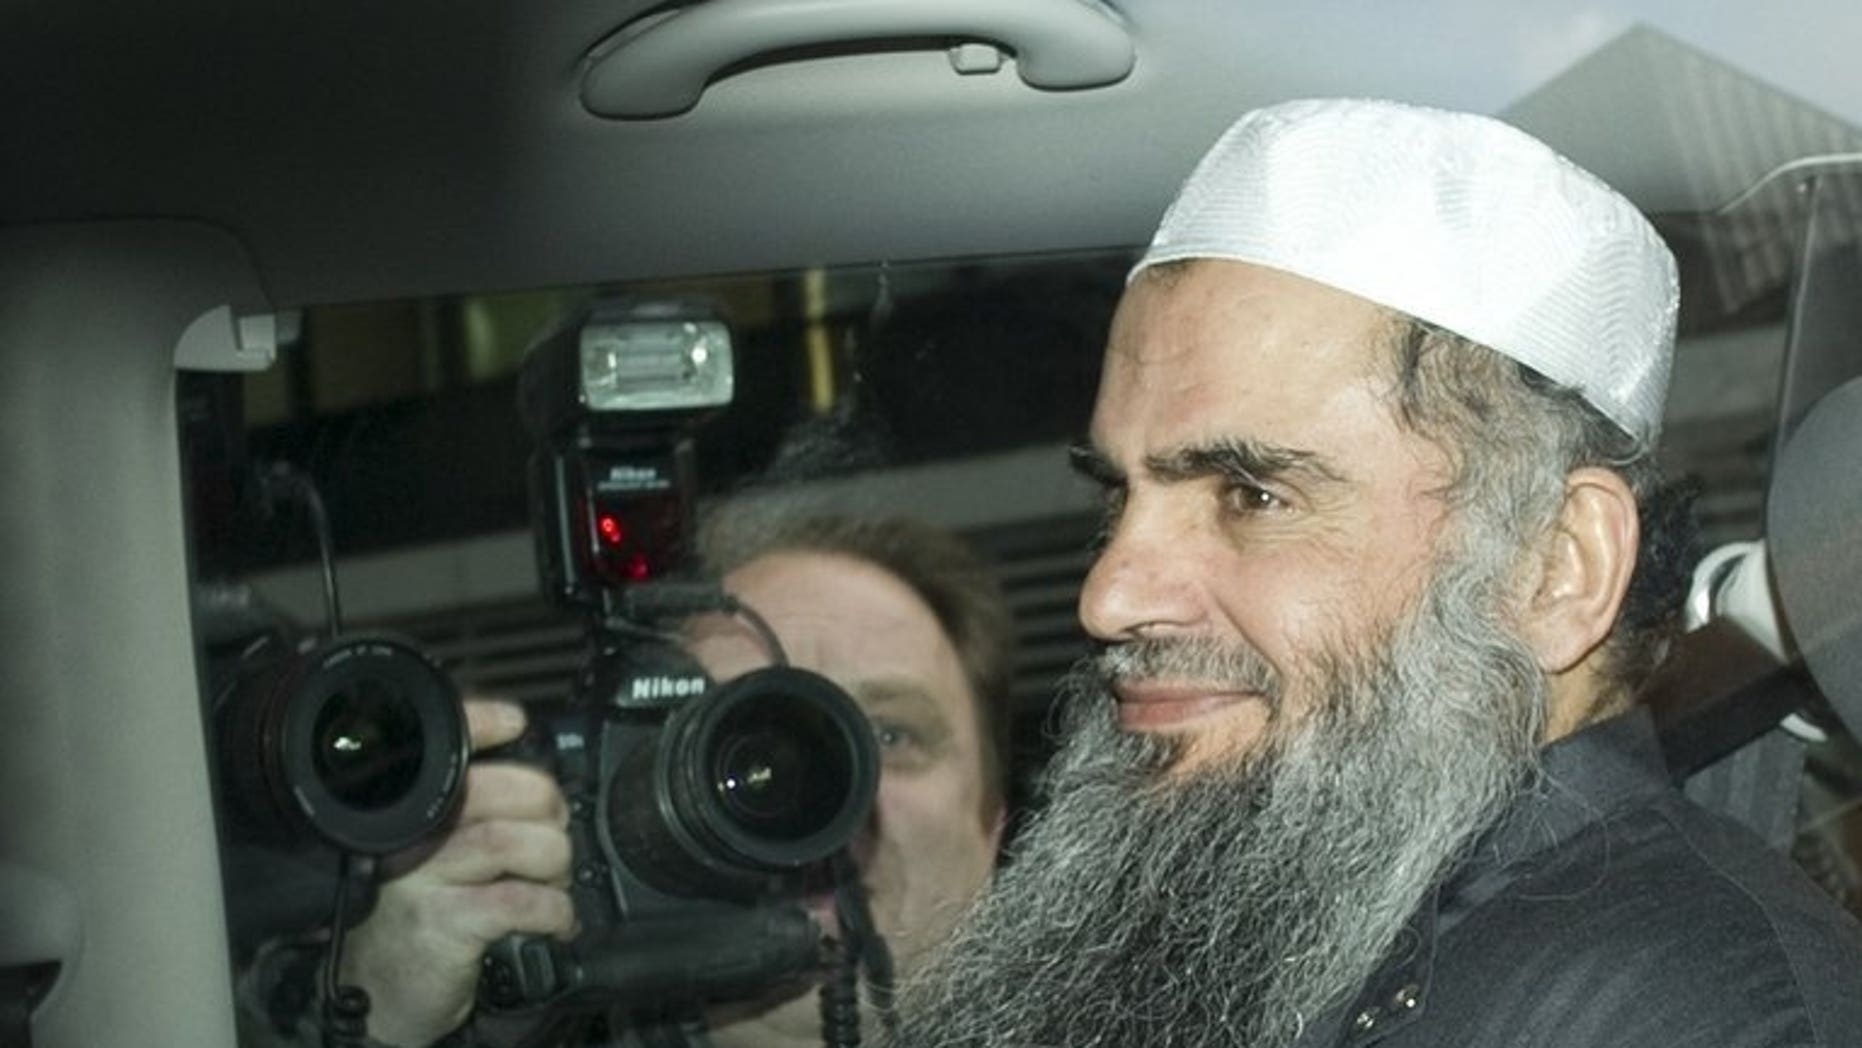 Radical Islamist cleric Abu Qatada sits in a car as he is driven away from a Special Immigration Appeals Hearing at the High Court in London on April 17, 2012. A treaty intended to clear the way to deporting radical cleric Abu Qatada to Jordan has passed into law in Britain.